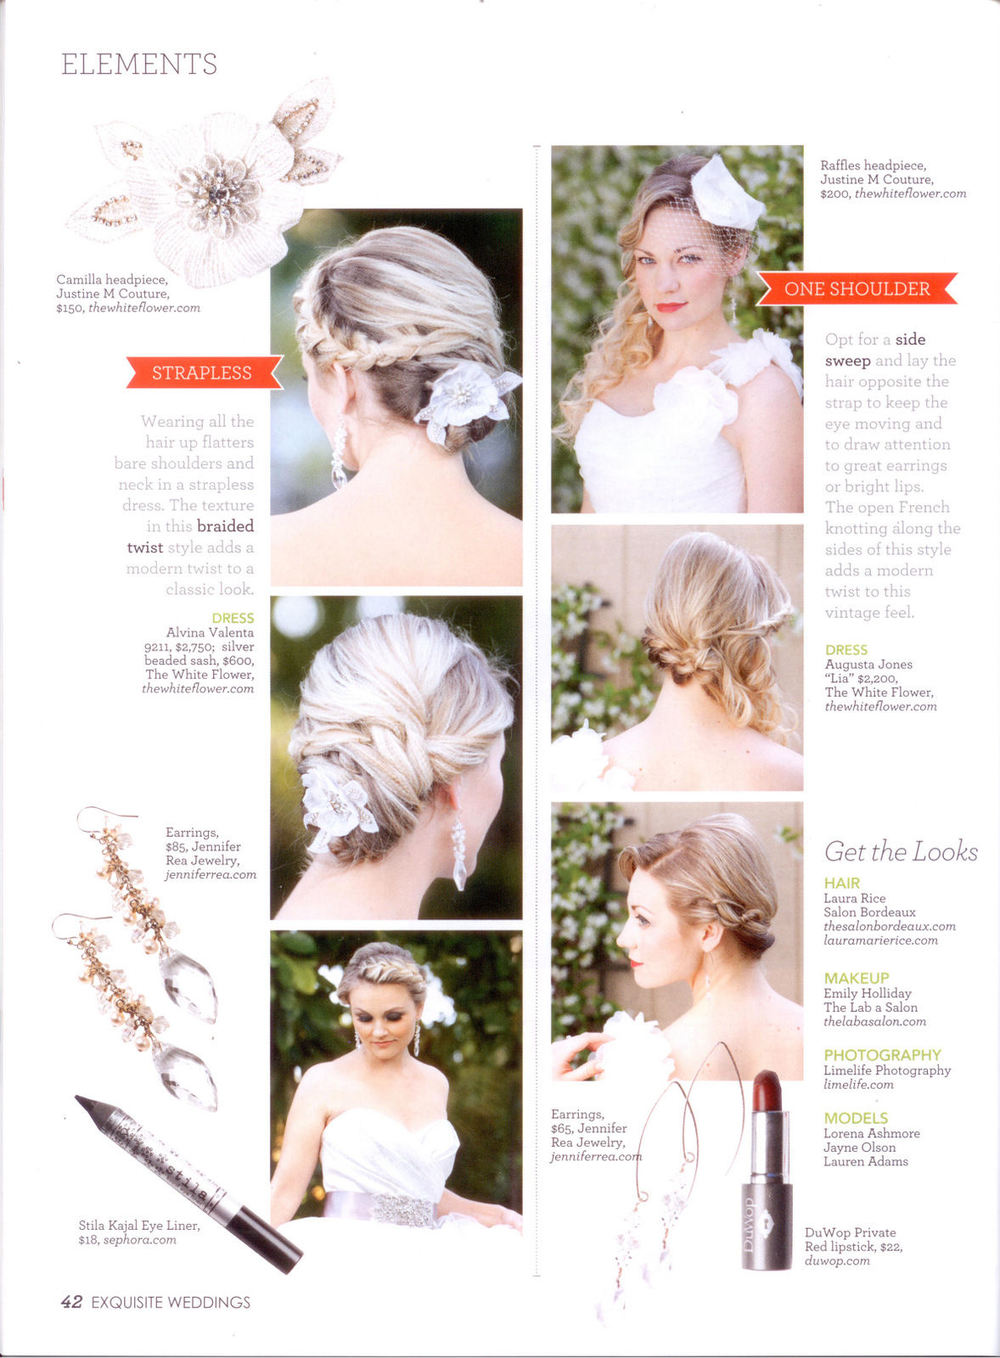 Exquisite Weddings Mag - Dec 2012 Jan 2013 Camila Flower etc.jpg